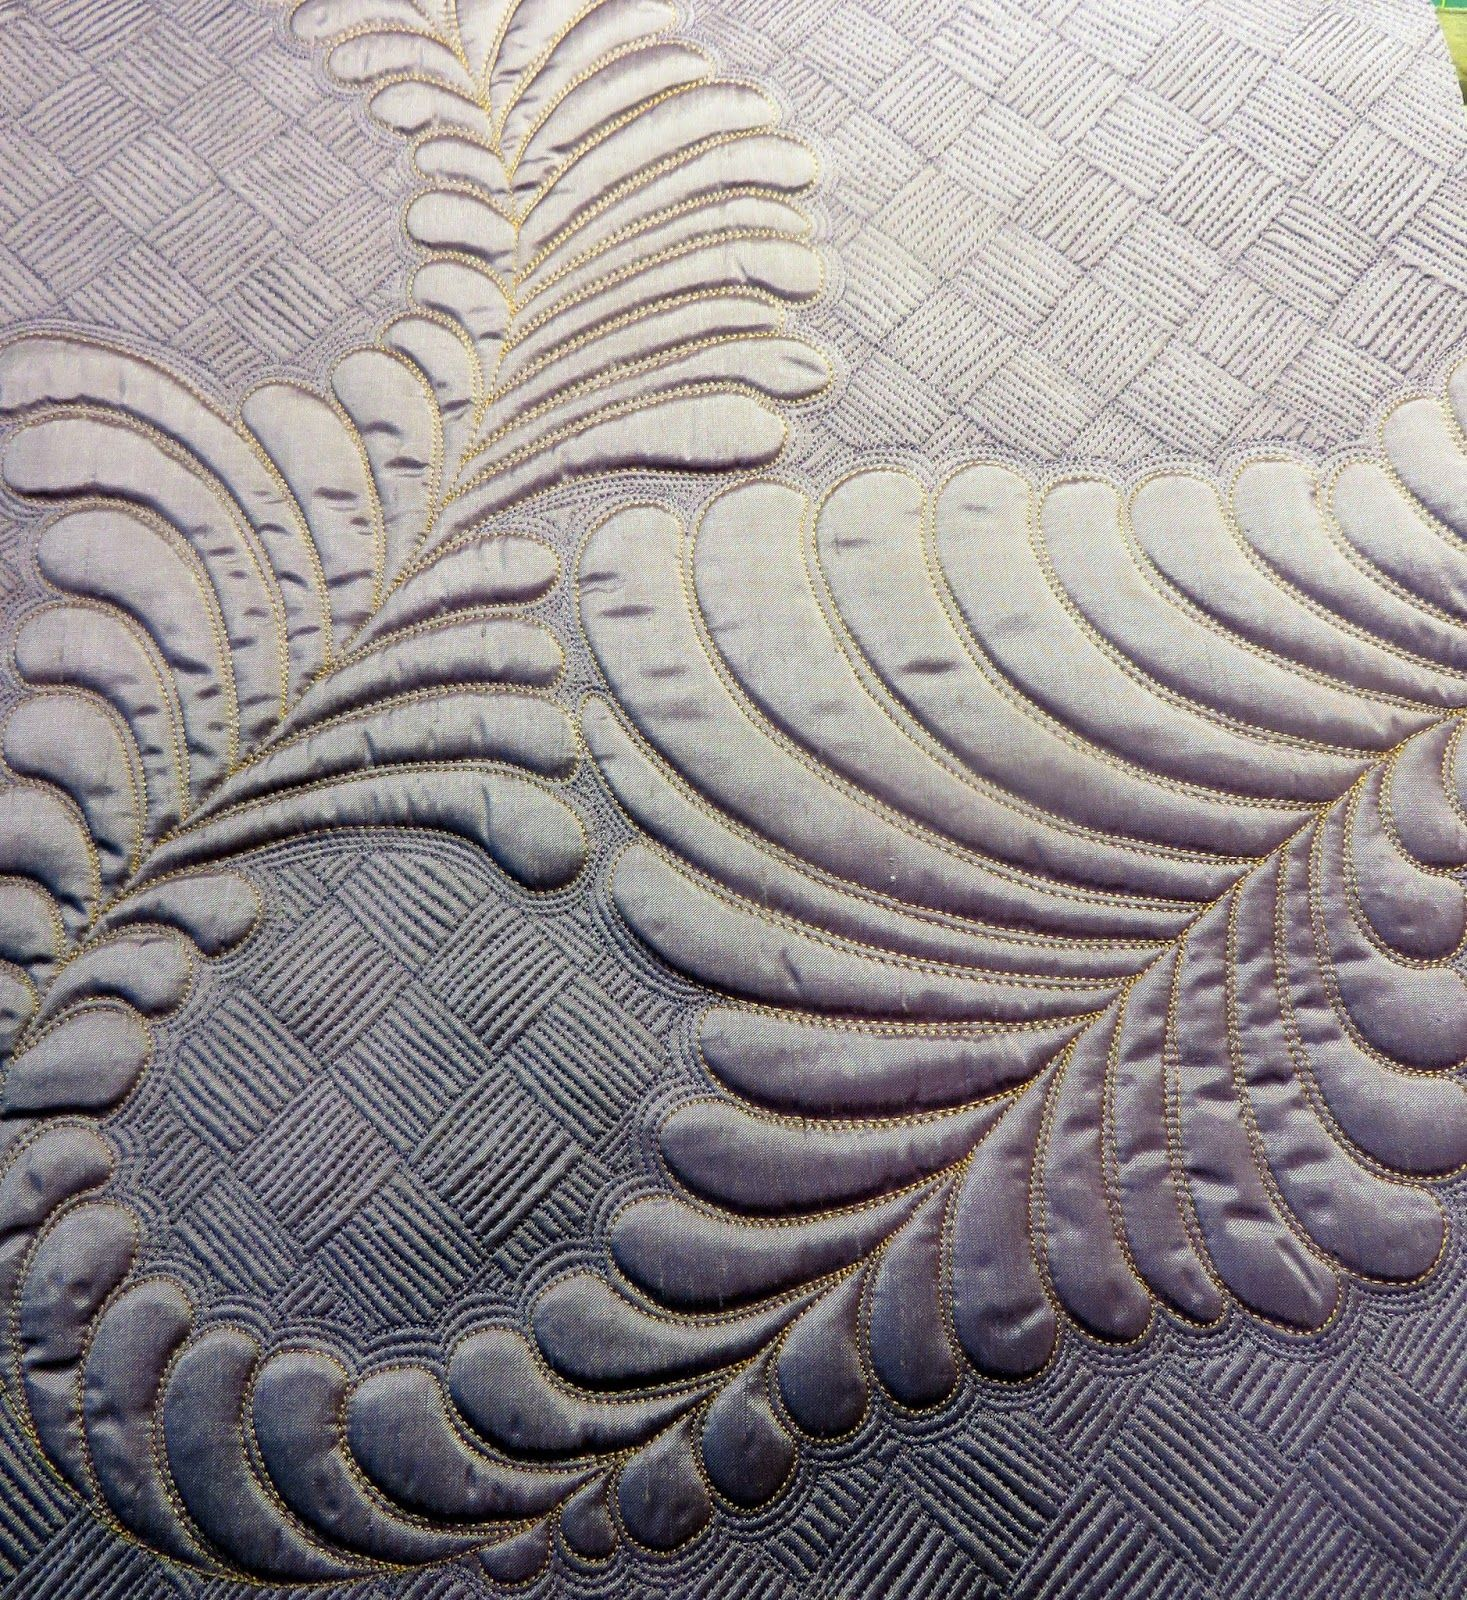 Cindy Needham: Heirloom Feathers quilting, July 2014